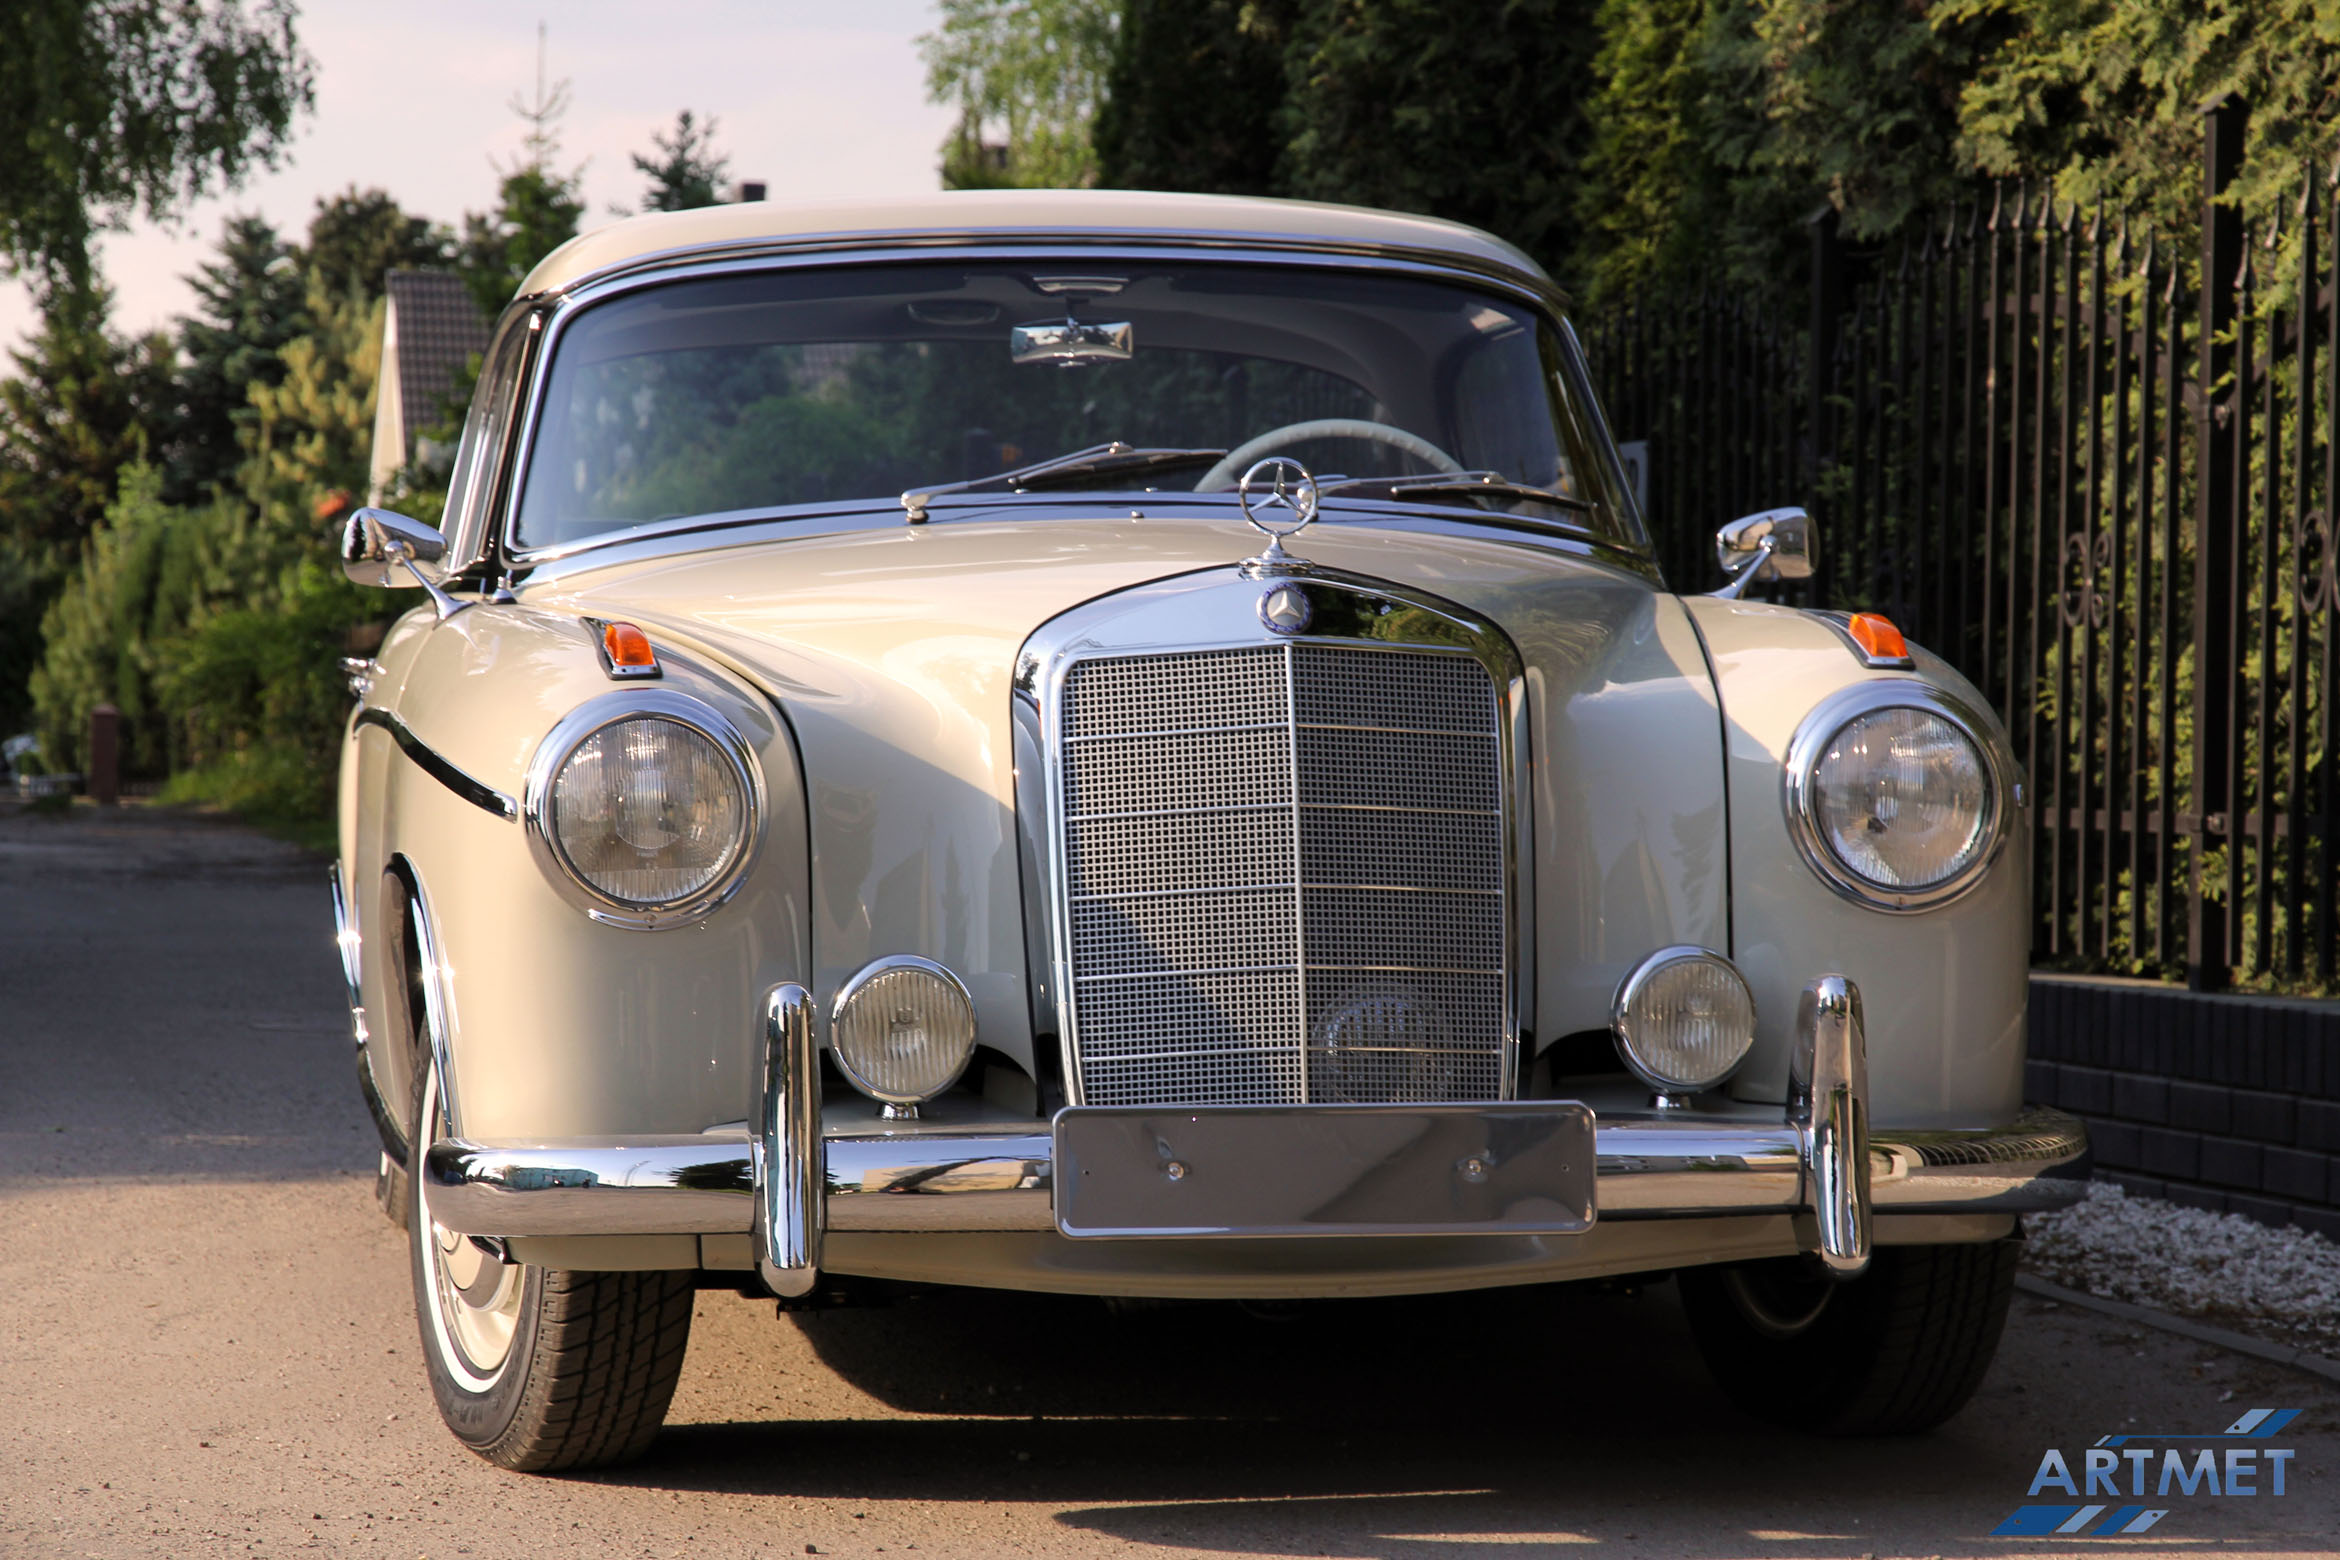 Mercedes-Benz 220 SE Coupe